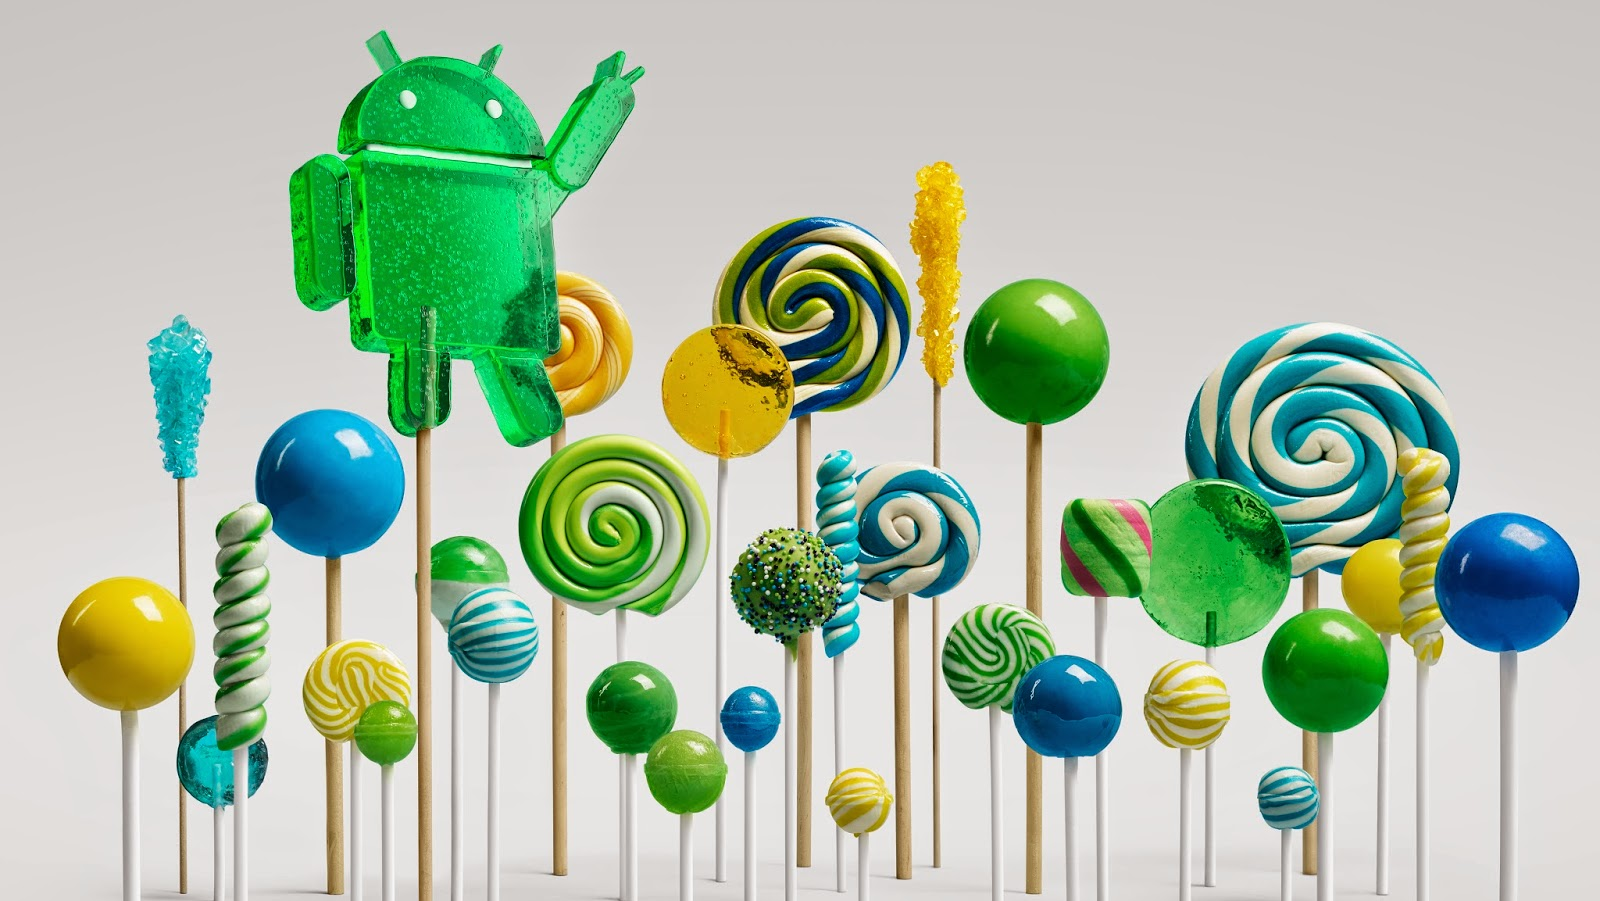 Android Lollipop 5.0 update